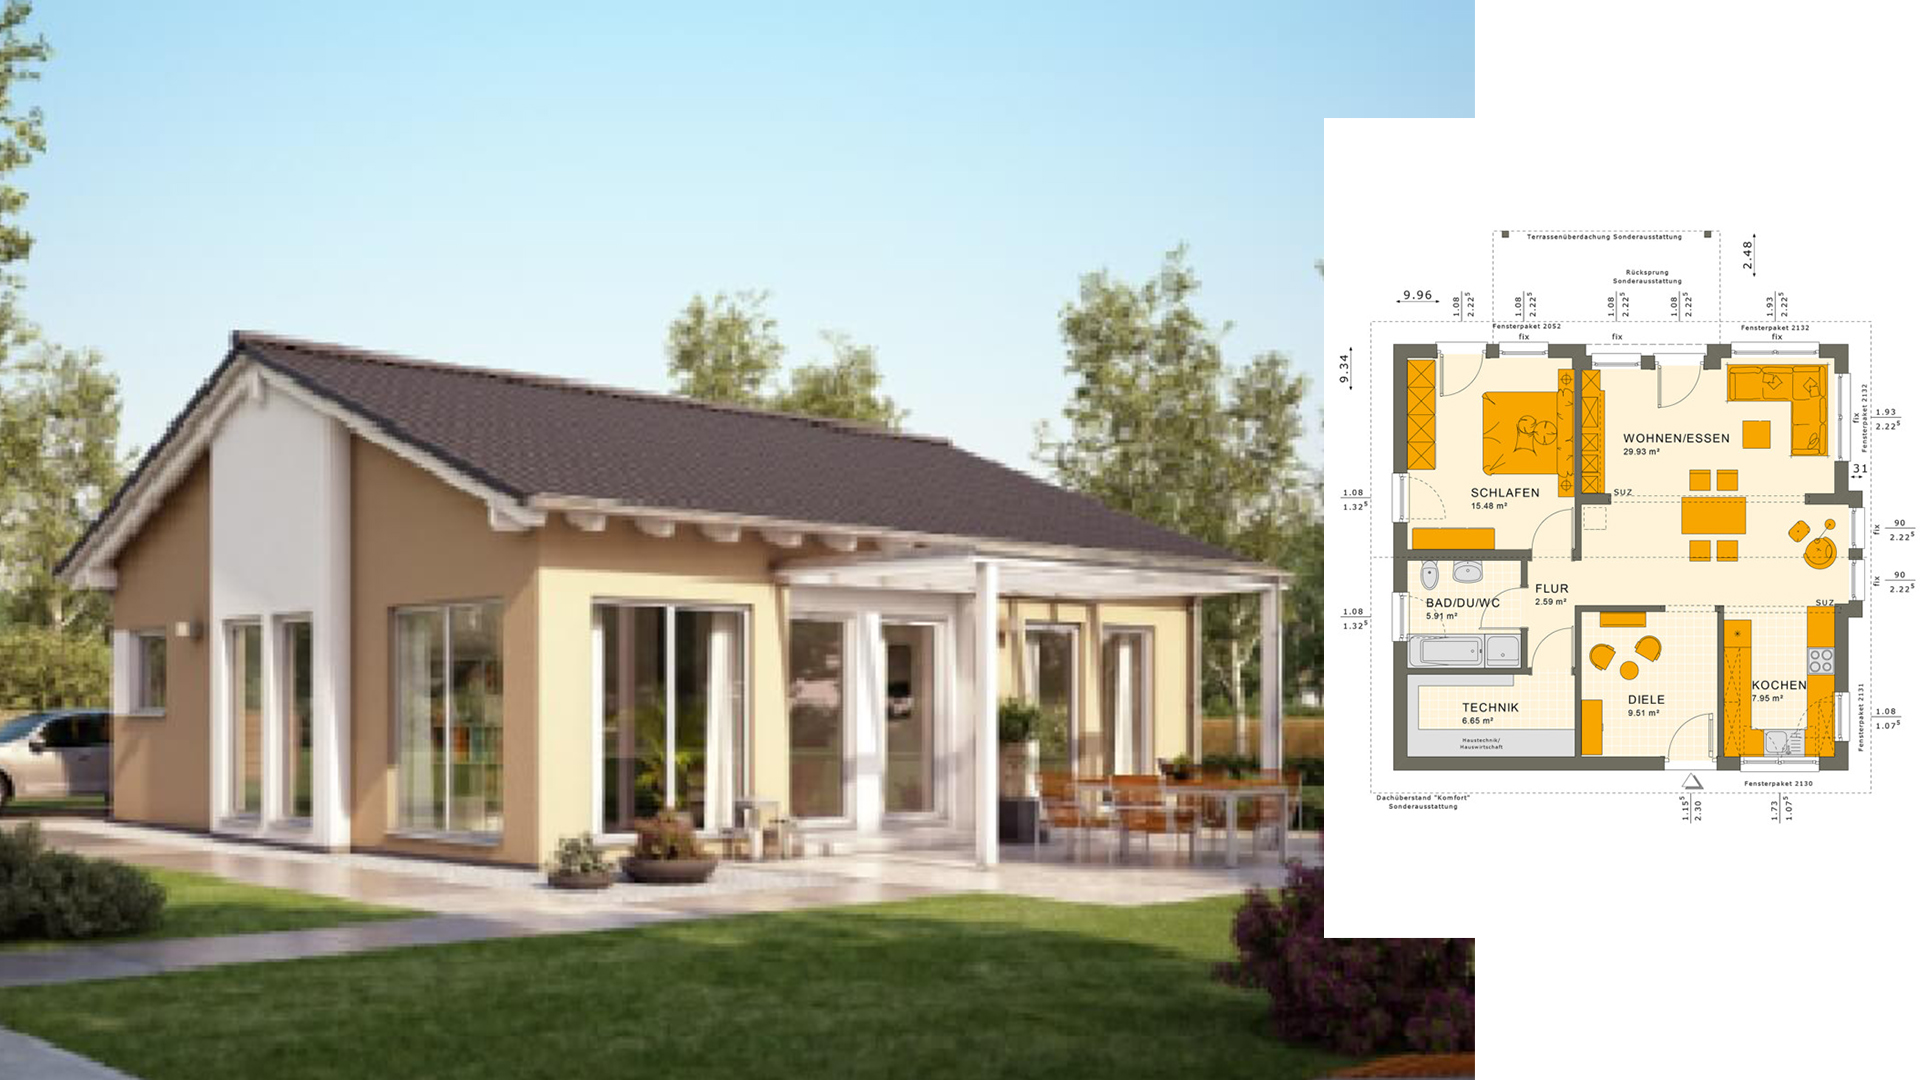 One Story Bungalow Design Plan 9x10 - Home Ideas